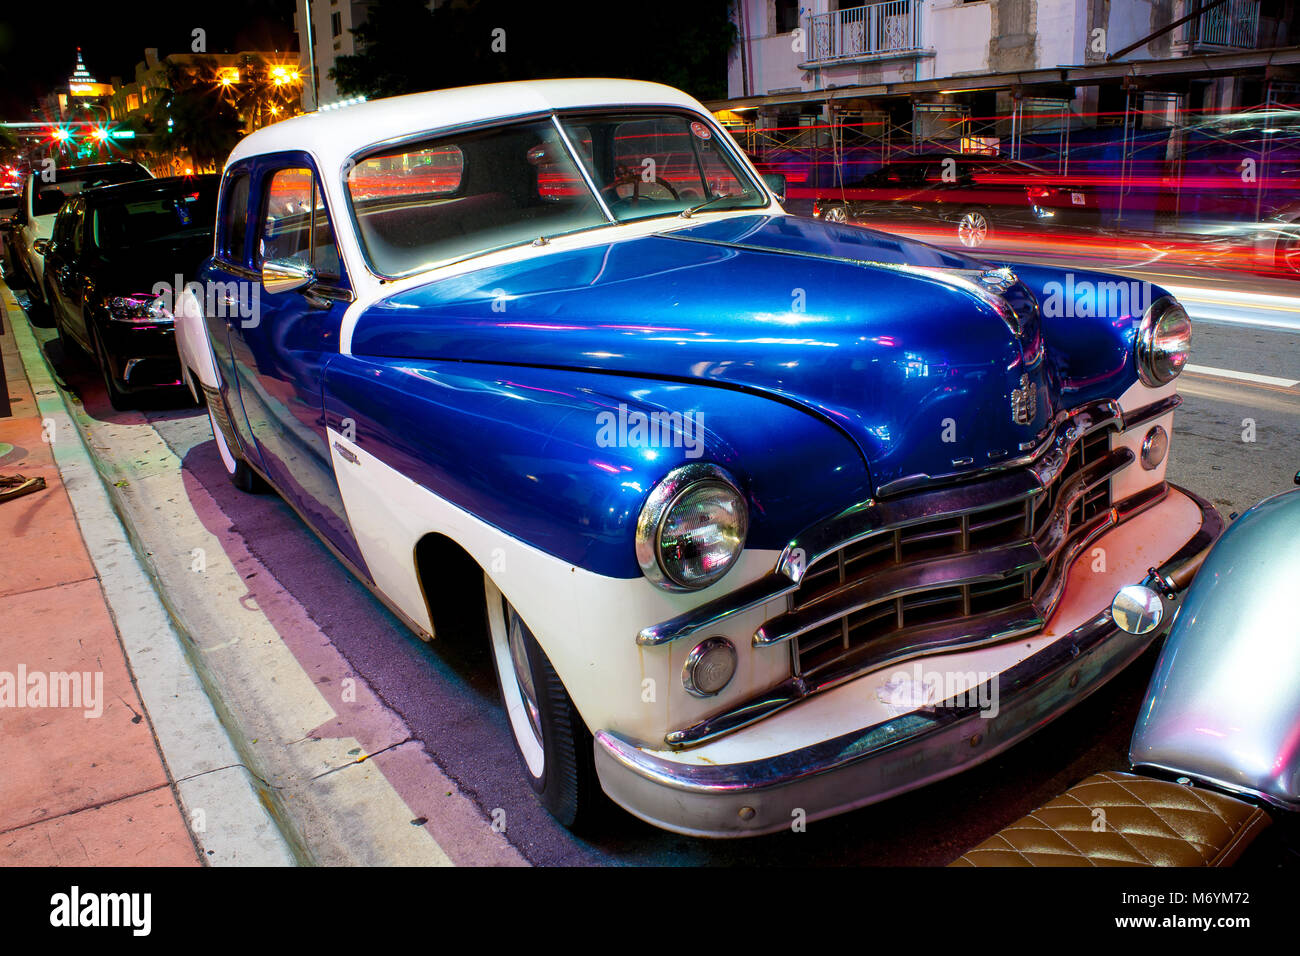 Blue white classic car parked on road in Miami at night Stock Photo ...